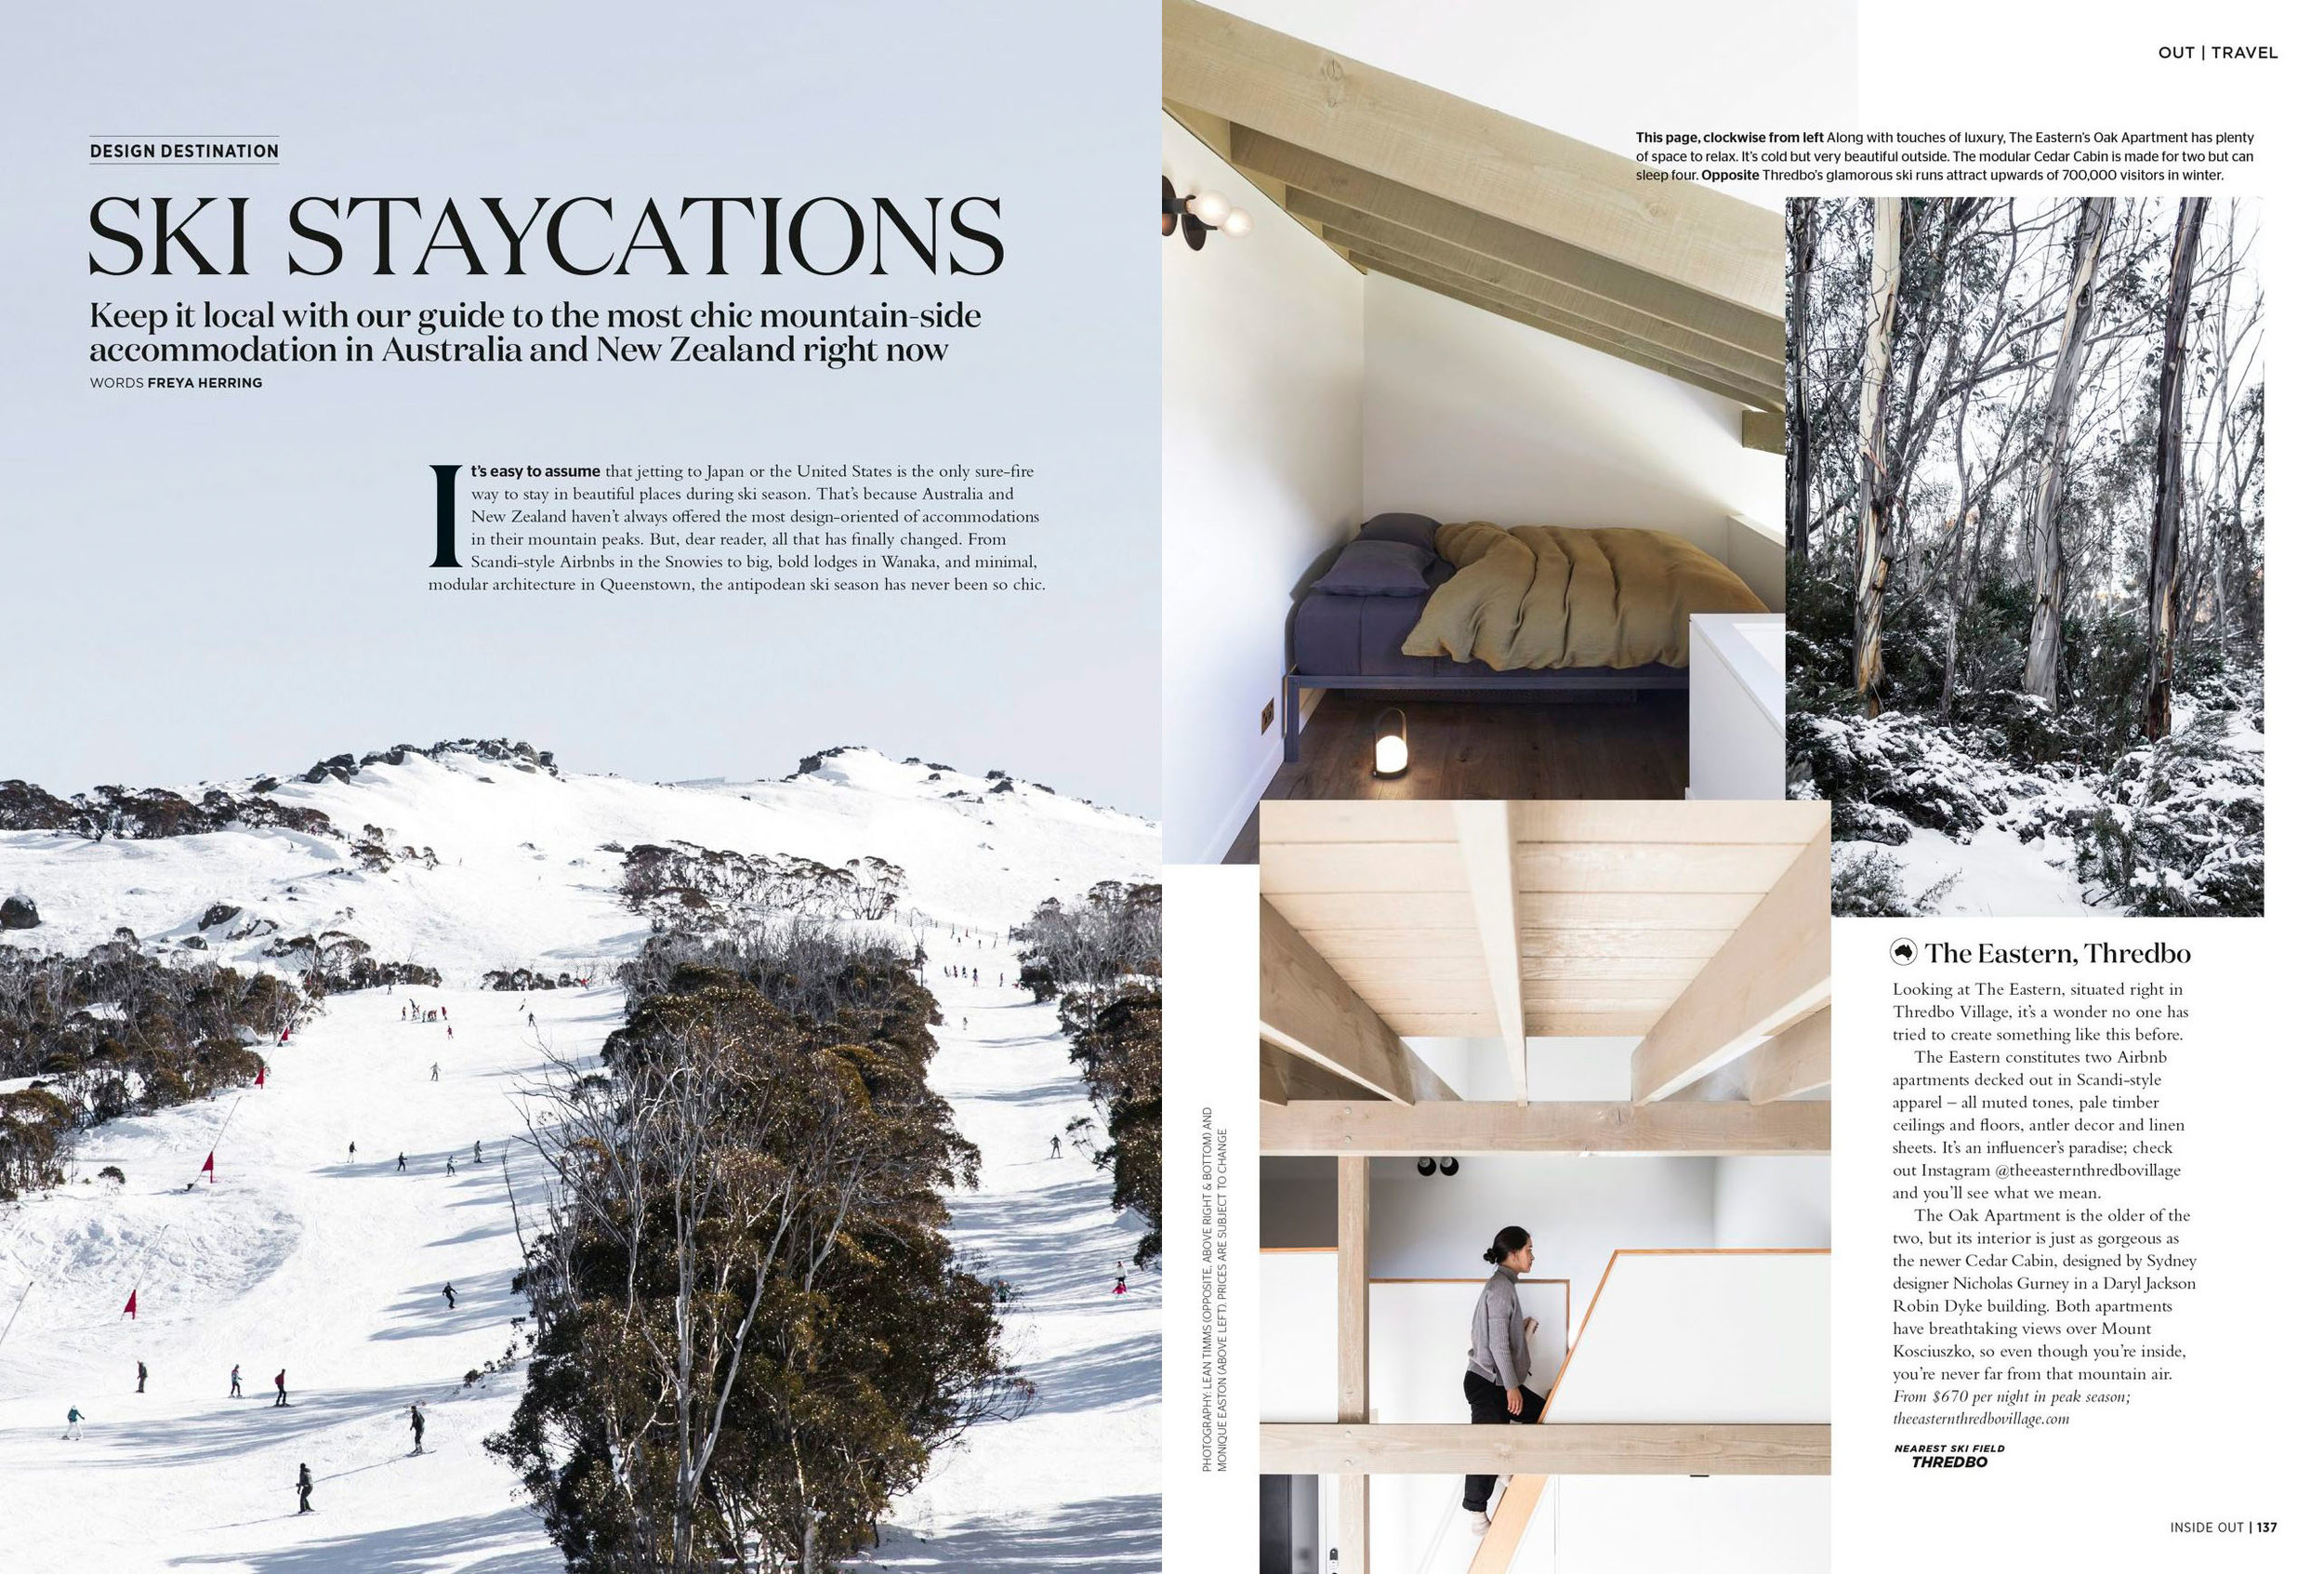 InsideOutMagazine_SkiVacations_AirBNB